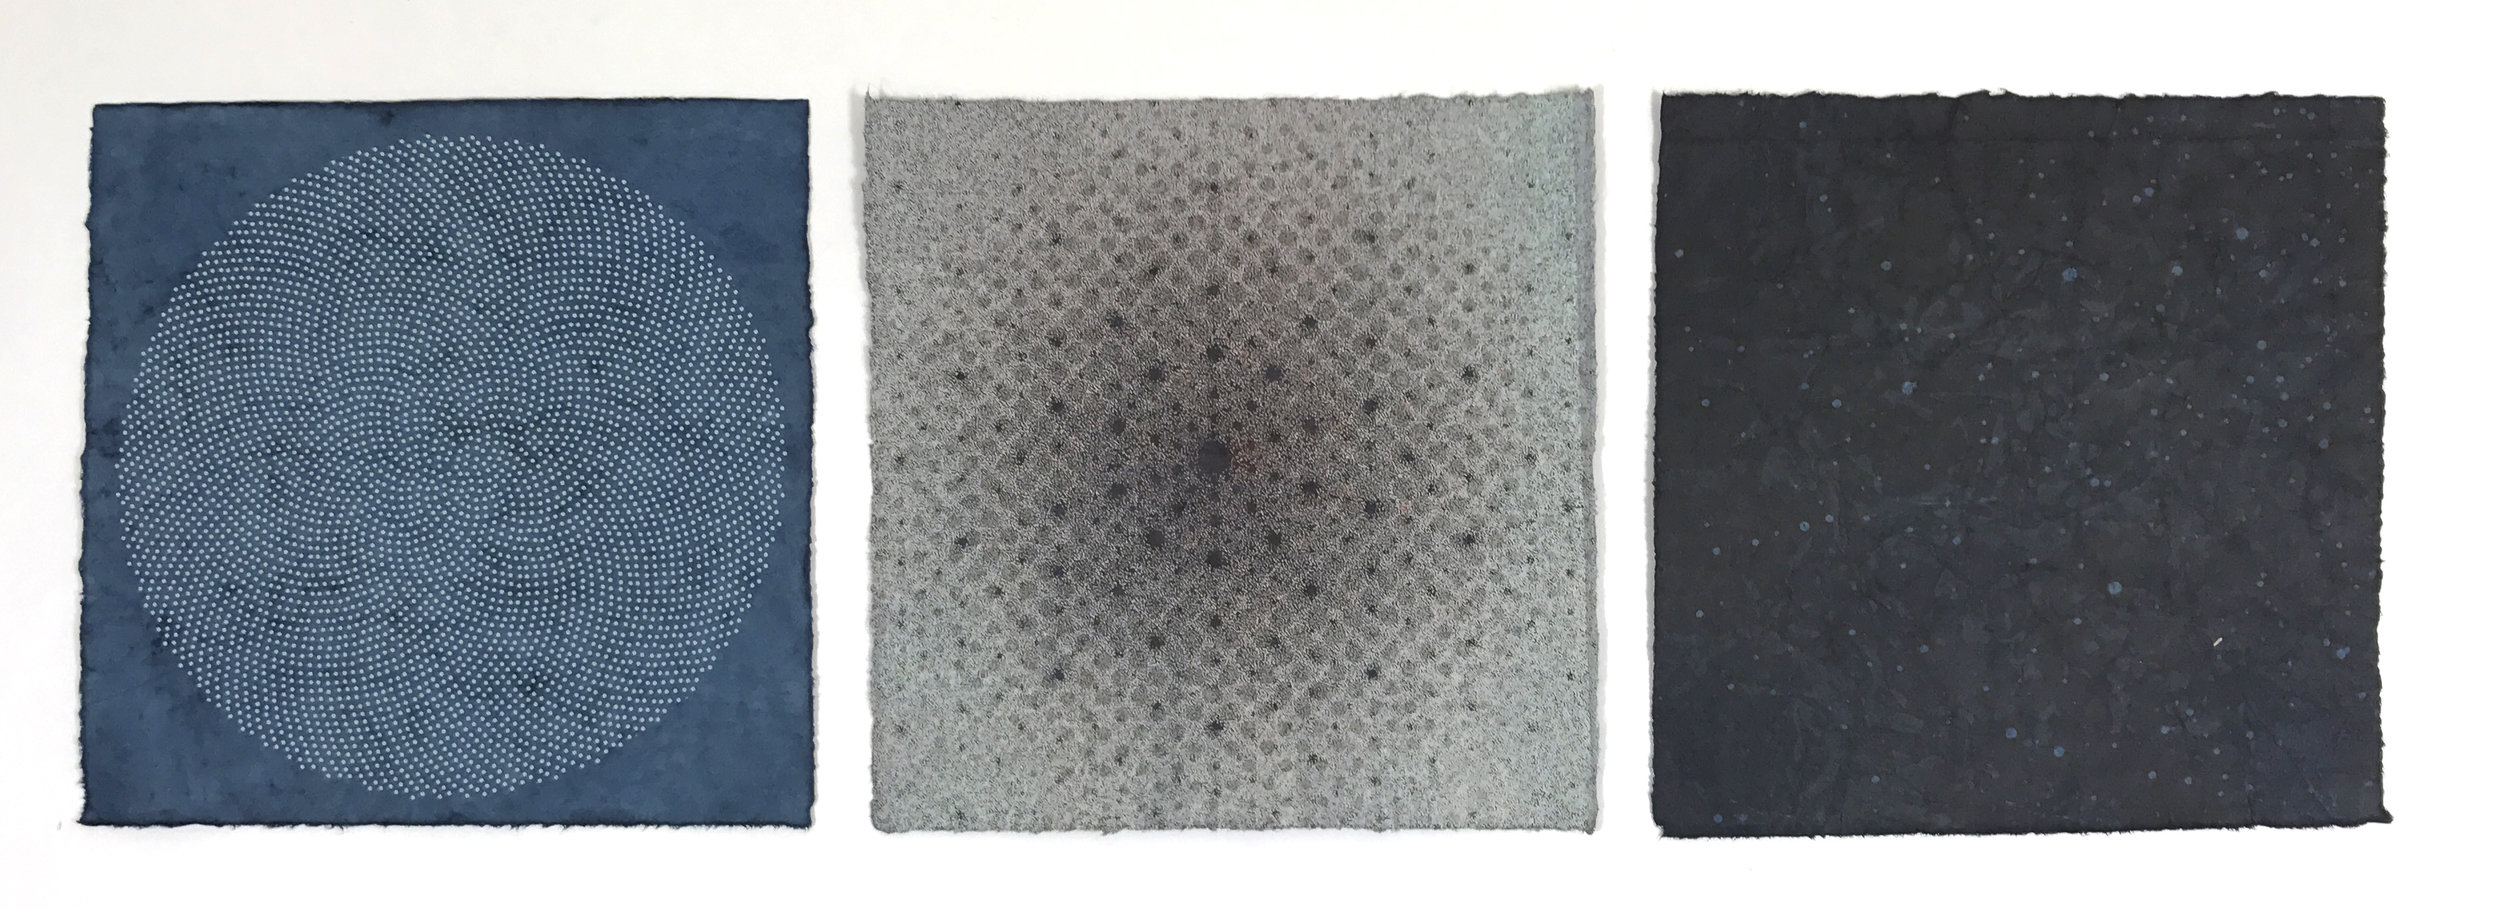 Amperage Variation Wax Triptych, 2017